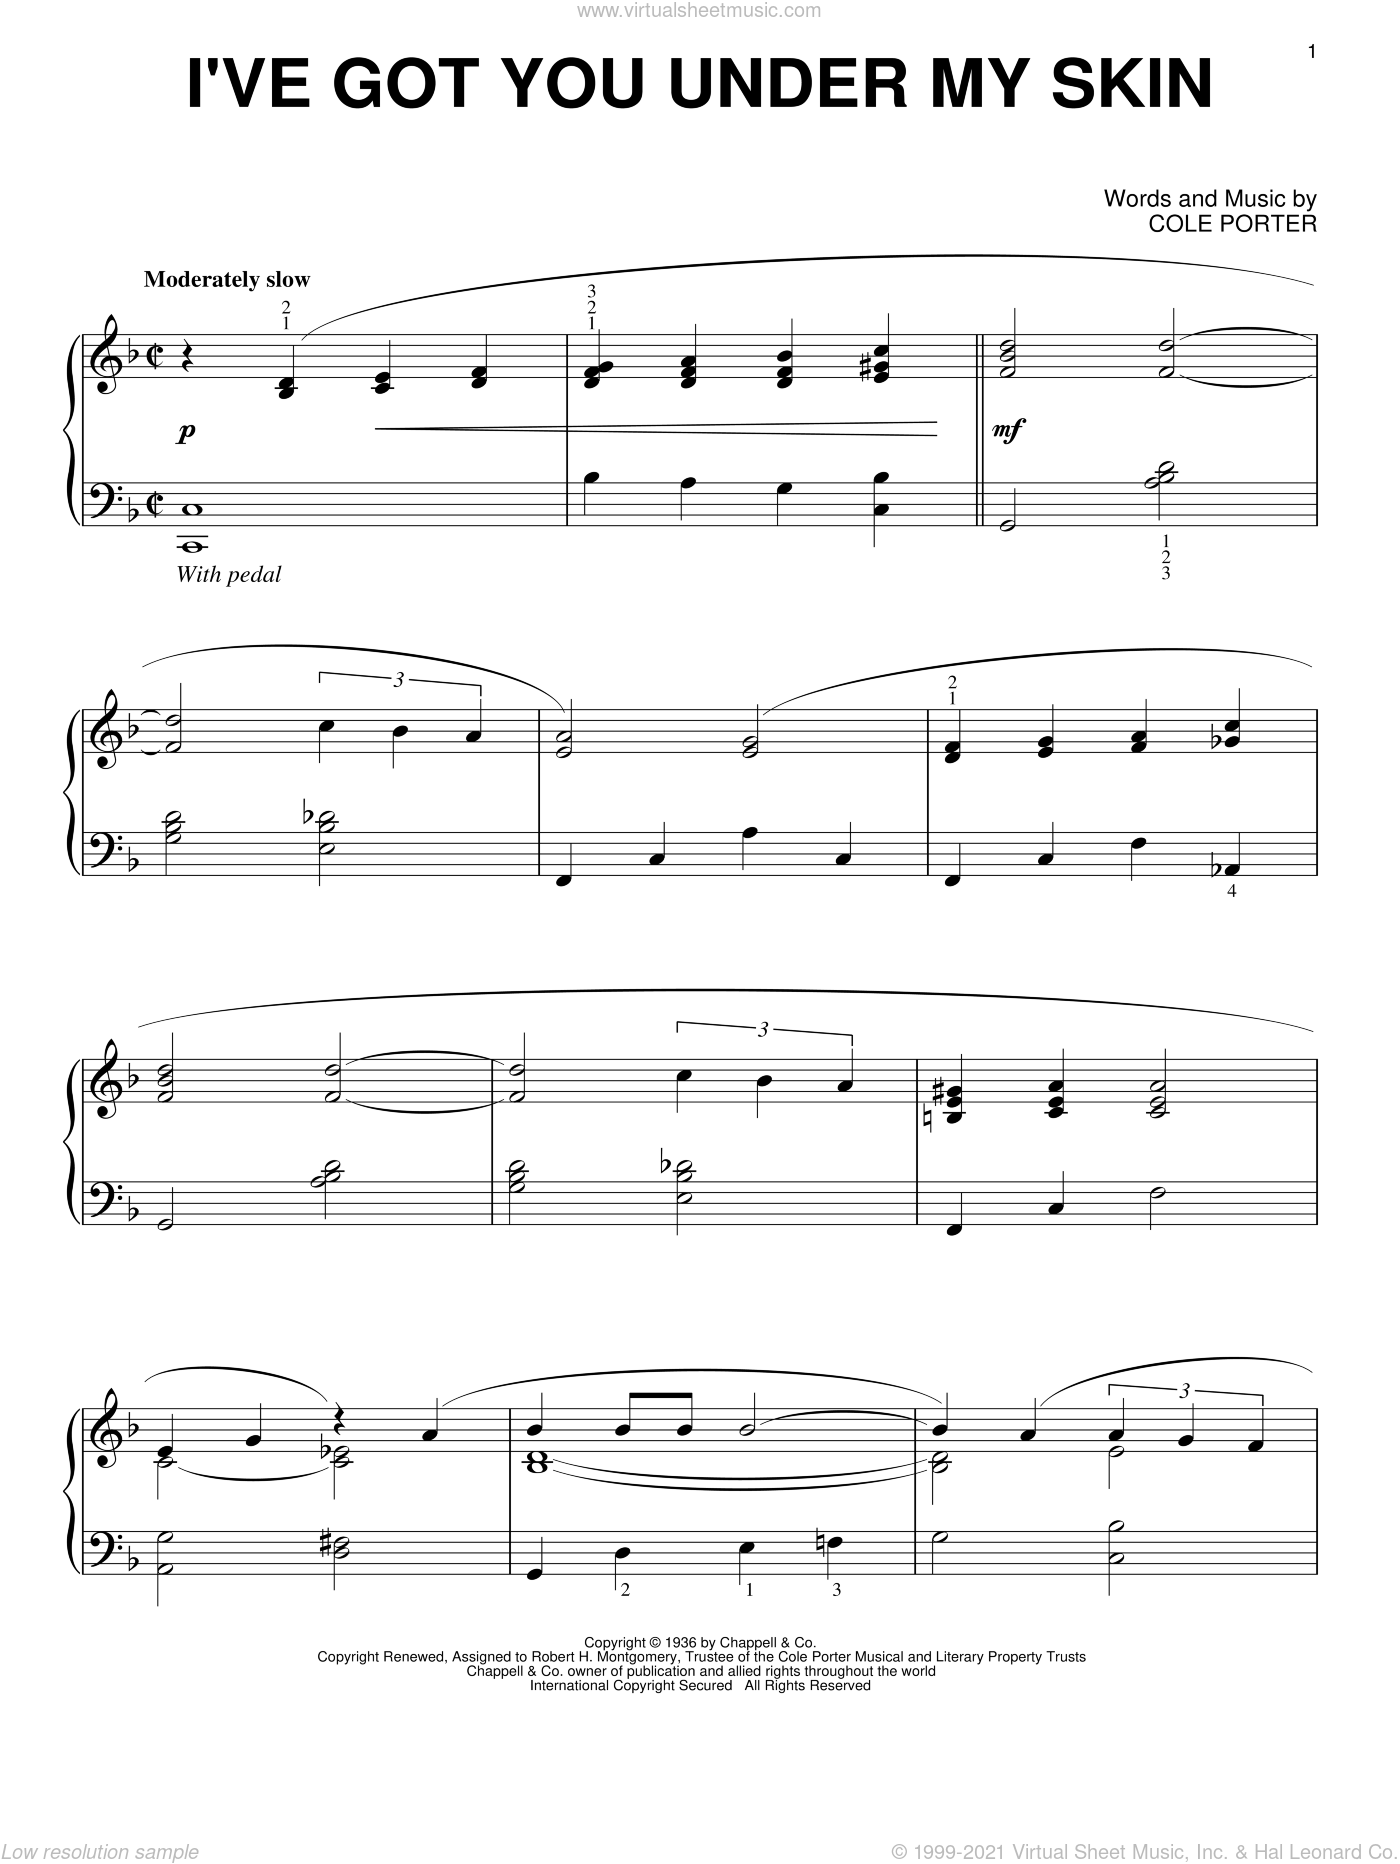 I've Got You Under My Skin sheet music for piano solo by Cole Porter